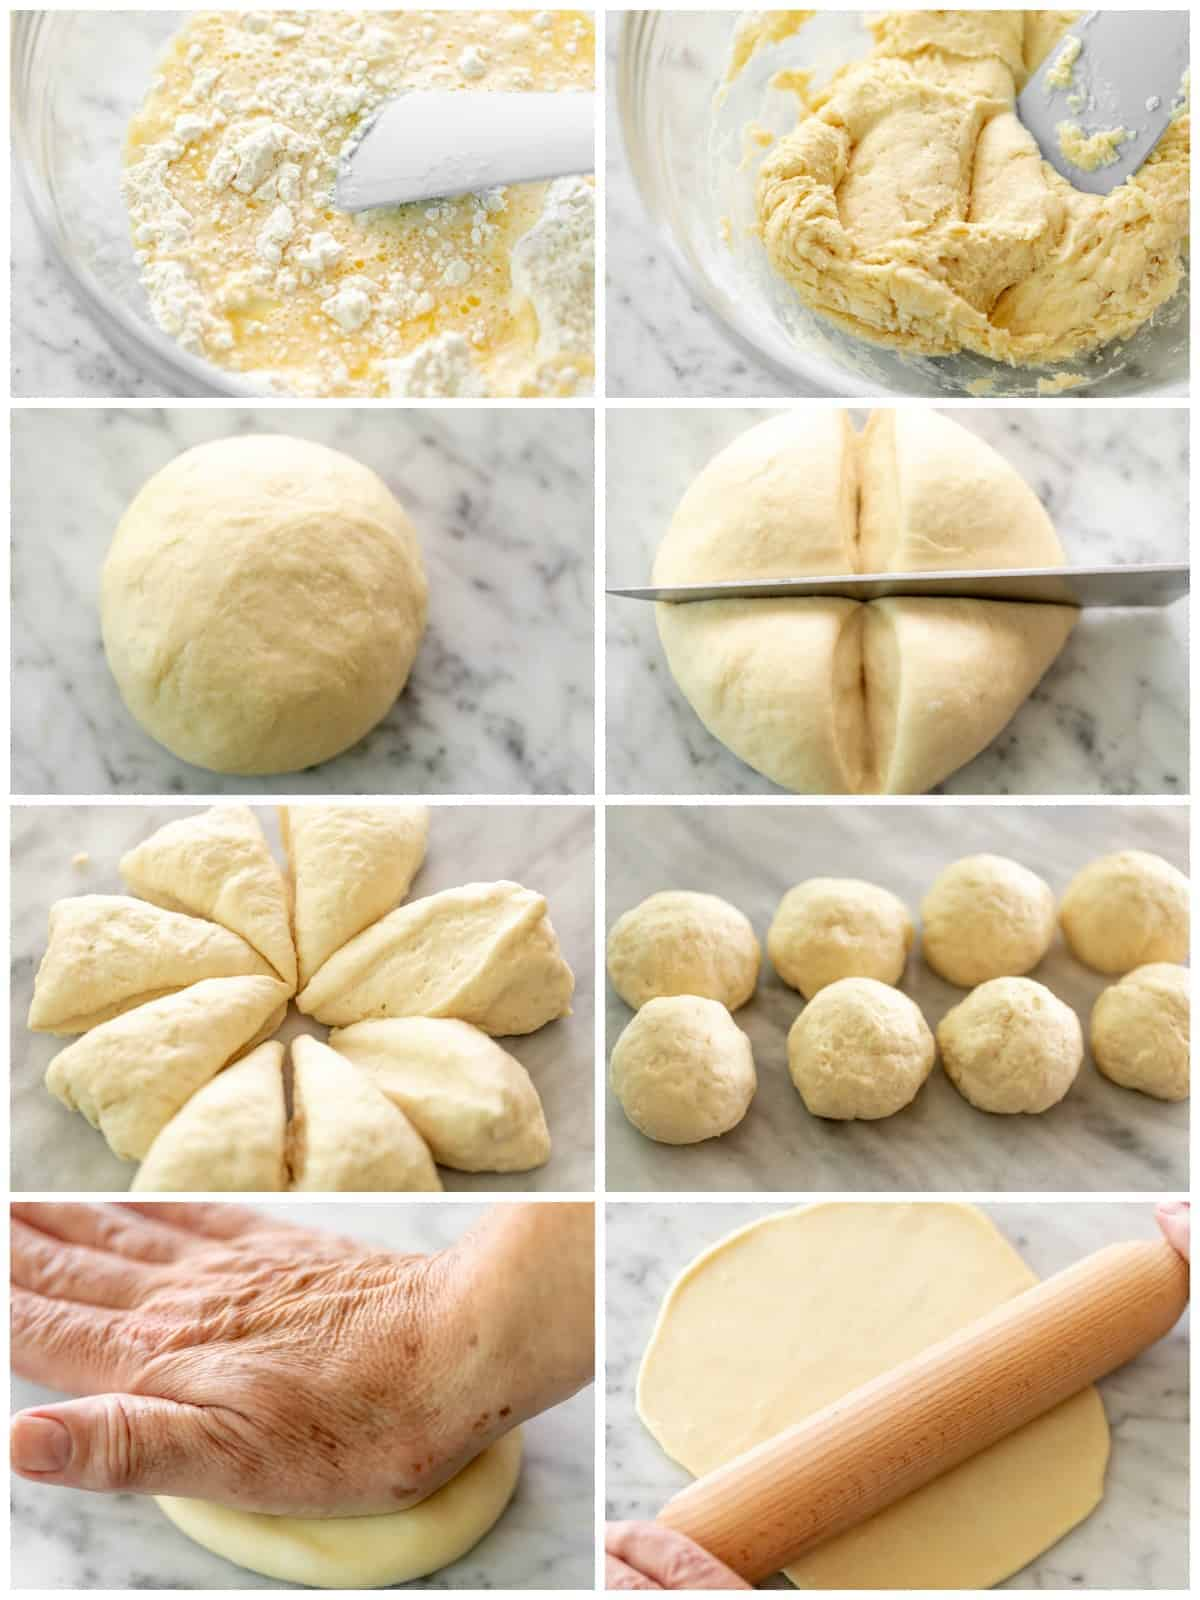 How To Make Flour Tortillas in a Collage | cafedelites.com